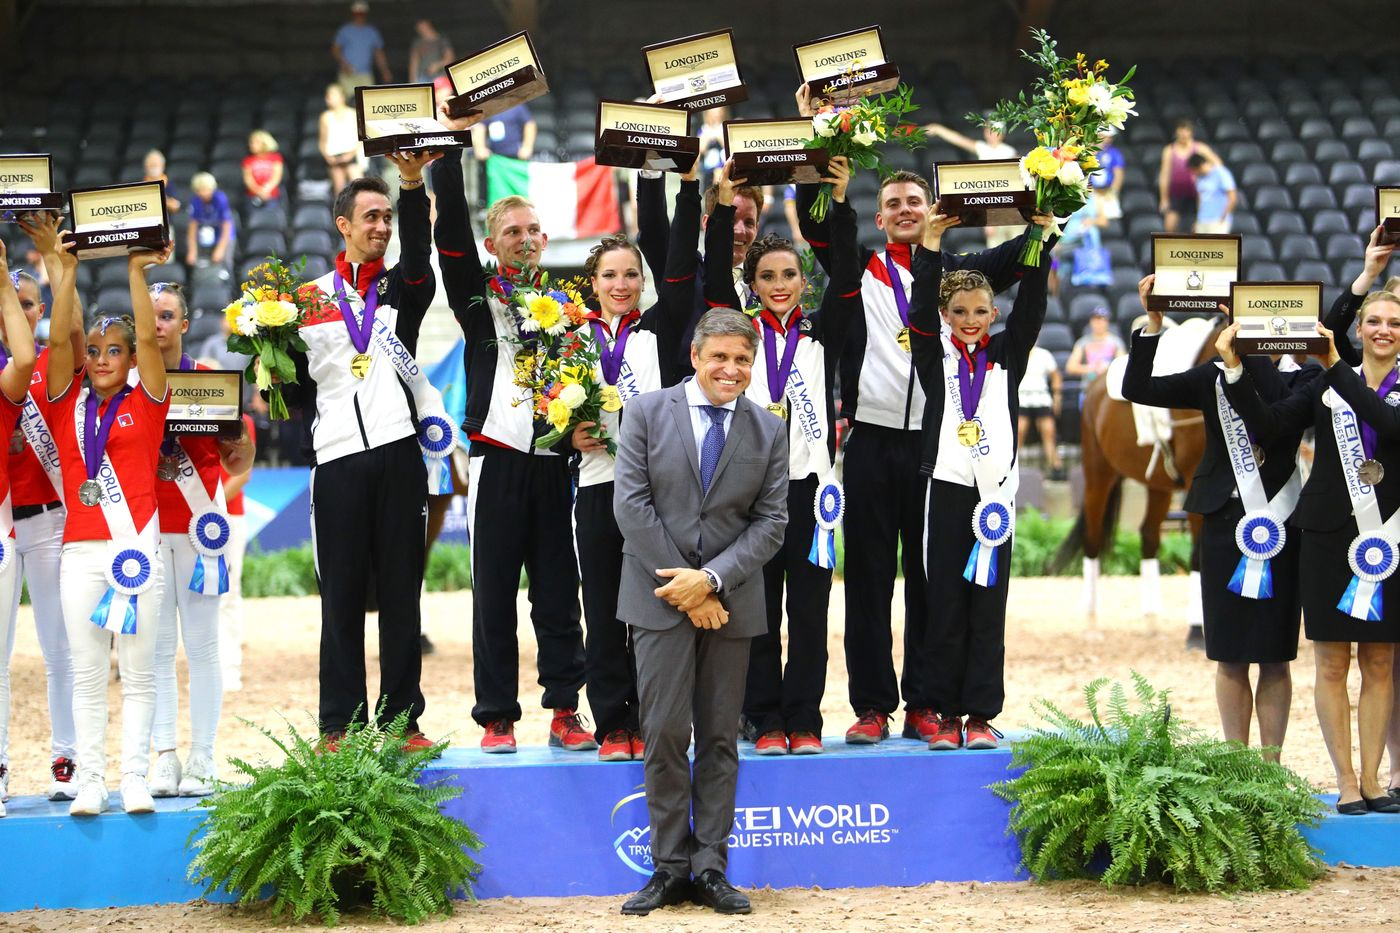 Longines Show Jumping Event: The FEI World Equestrian Games ended beautifully with Germany topping the medal table   10